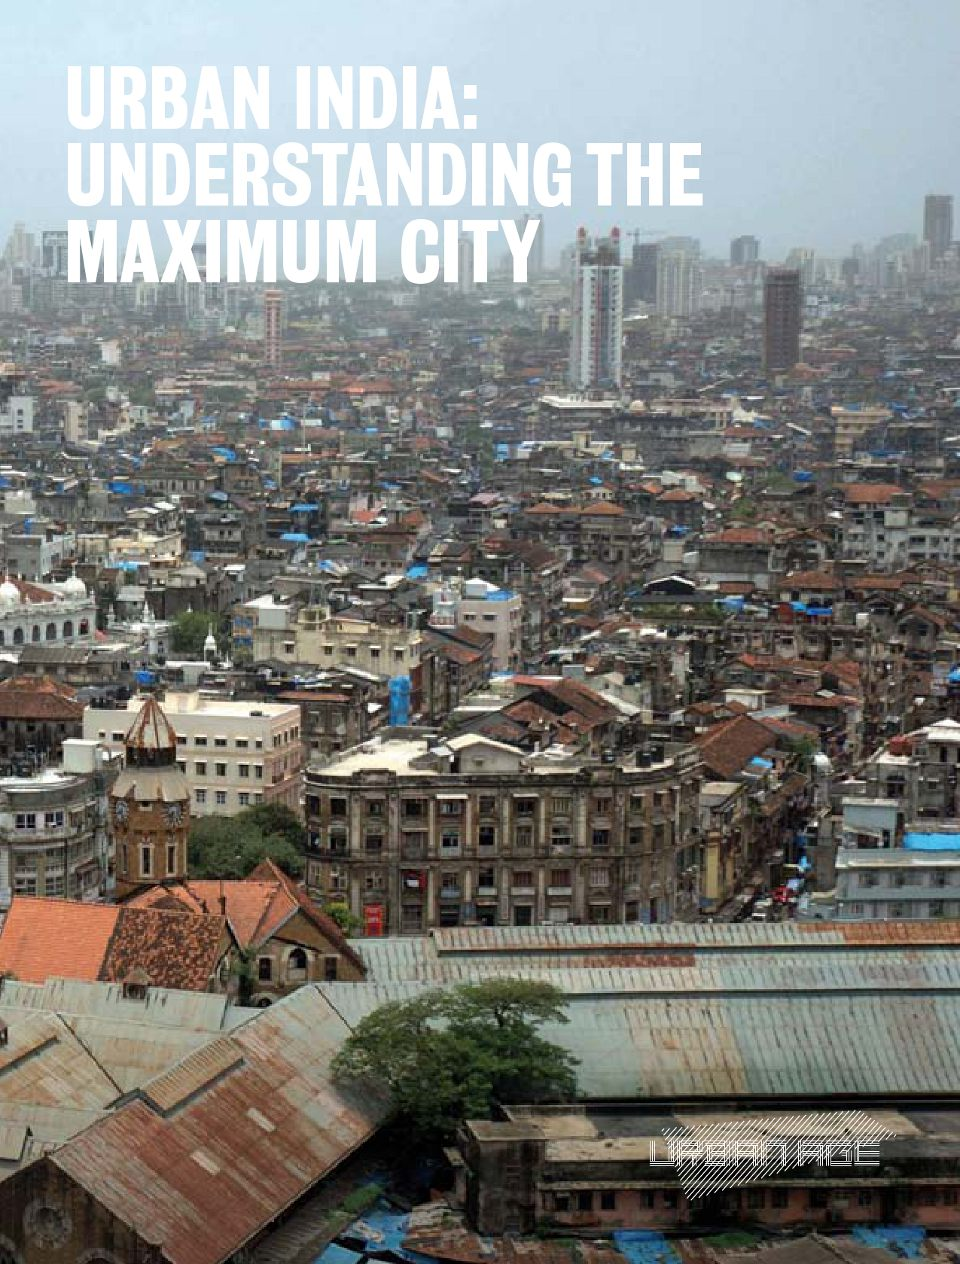 essay on mumbai life The human civilization underwent many changes and developments with the passage of time early man lived in caves and forests related articles: comparative essay on city life vs village life.